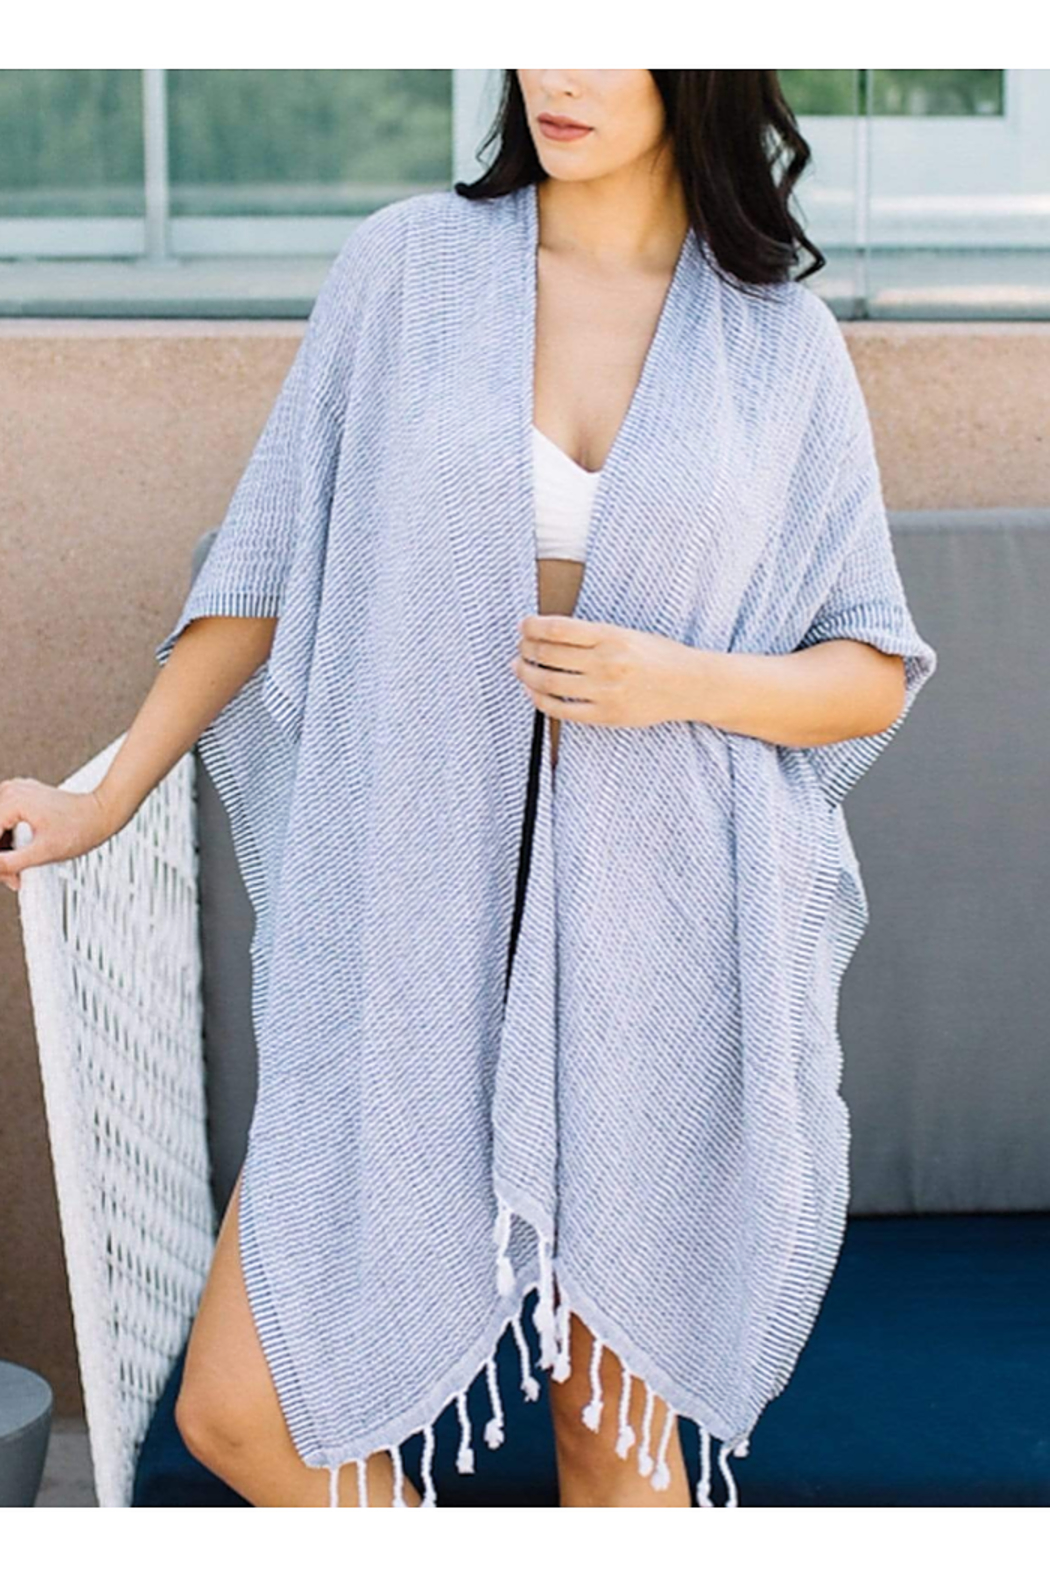 The Birds Nest BEACH WRAP WITH TOTE - Main Image